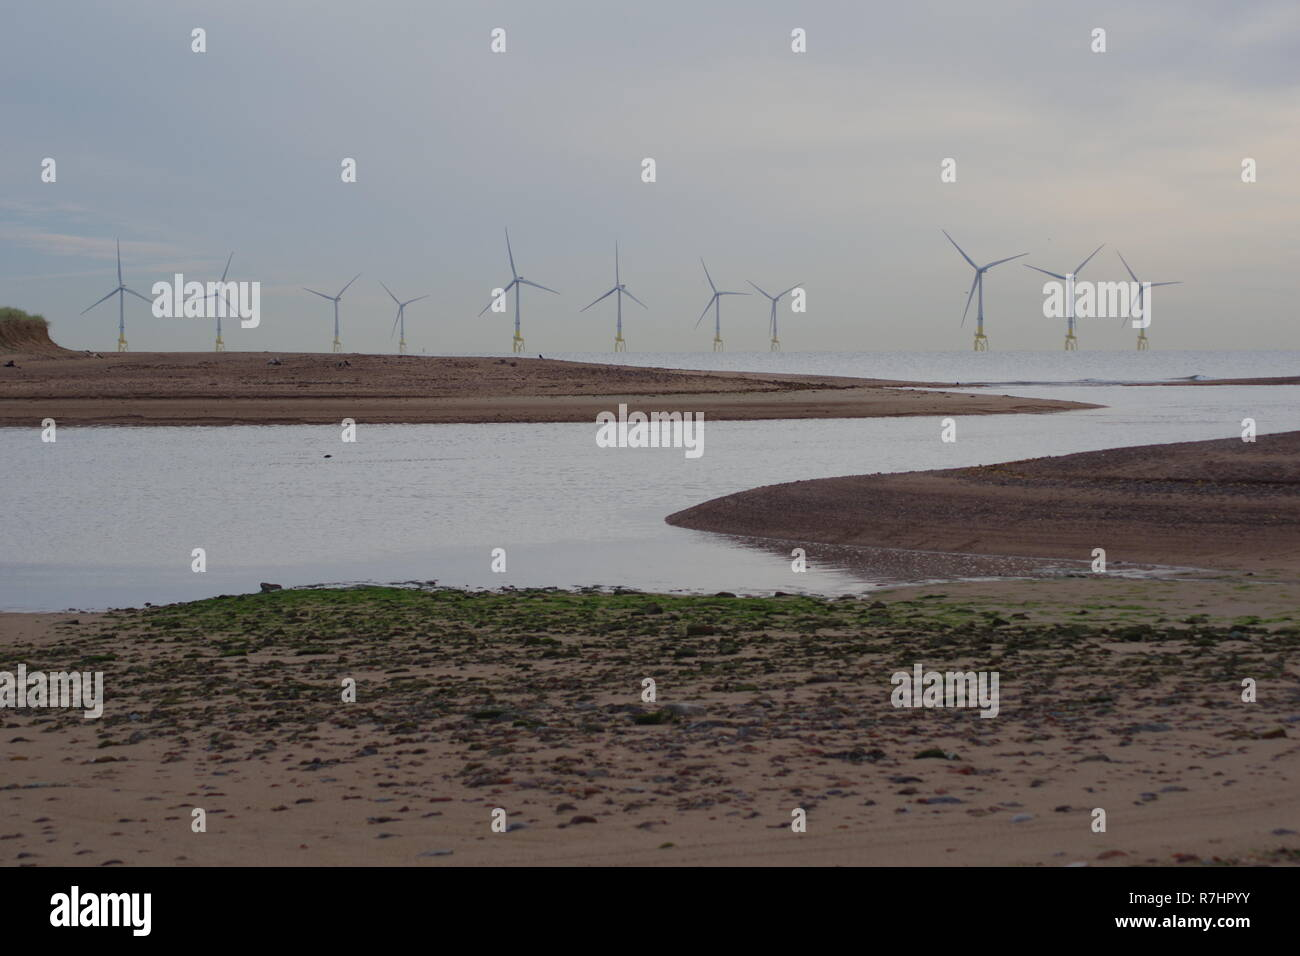 European Offshore Wind Deployment Centre. Renewable Energy Wind Farm, Offshore Aberdeen.Beyond Donmouth Nature Reserve on a Grey Day. Scotland, UK. - Stock Image